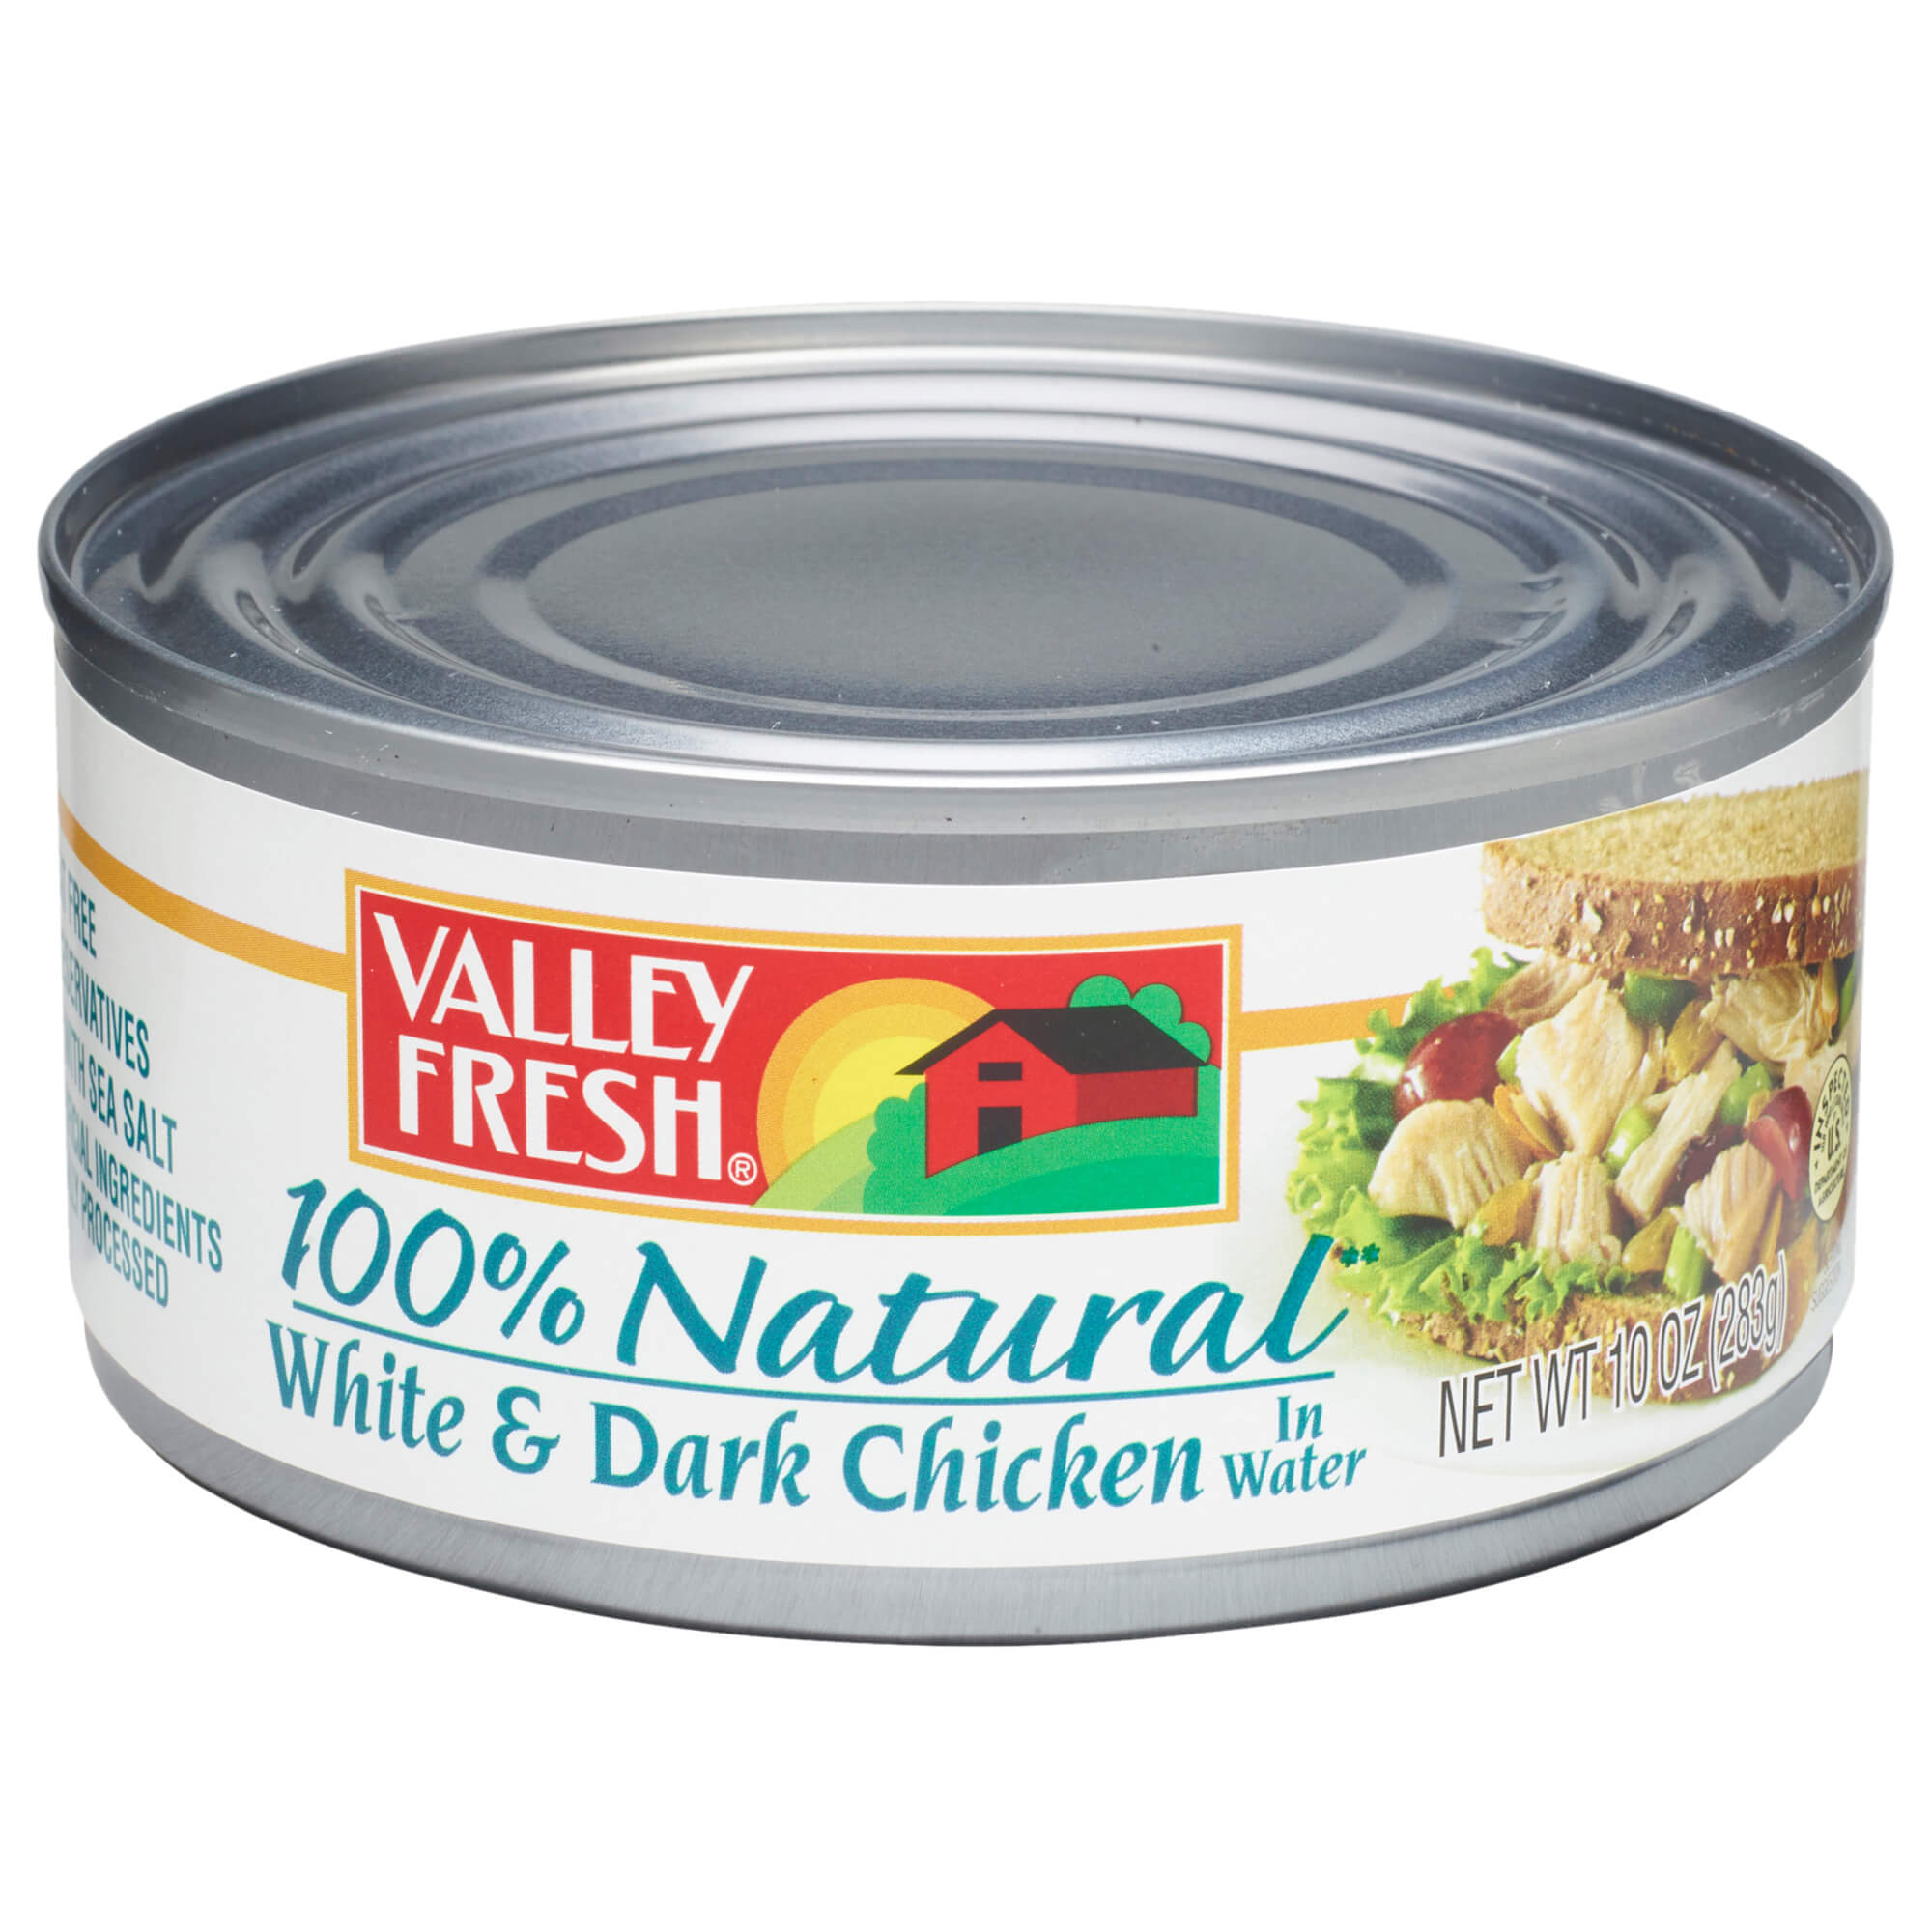 Valley Fresh 100% Natural White and Dark Canned Chicken in Broth, 10 Ounce